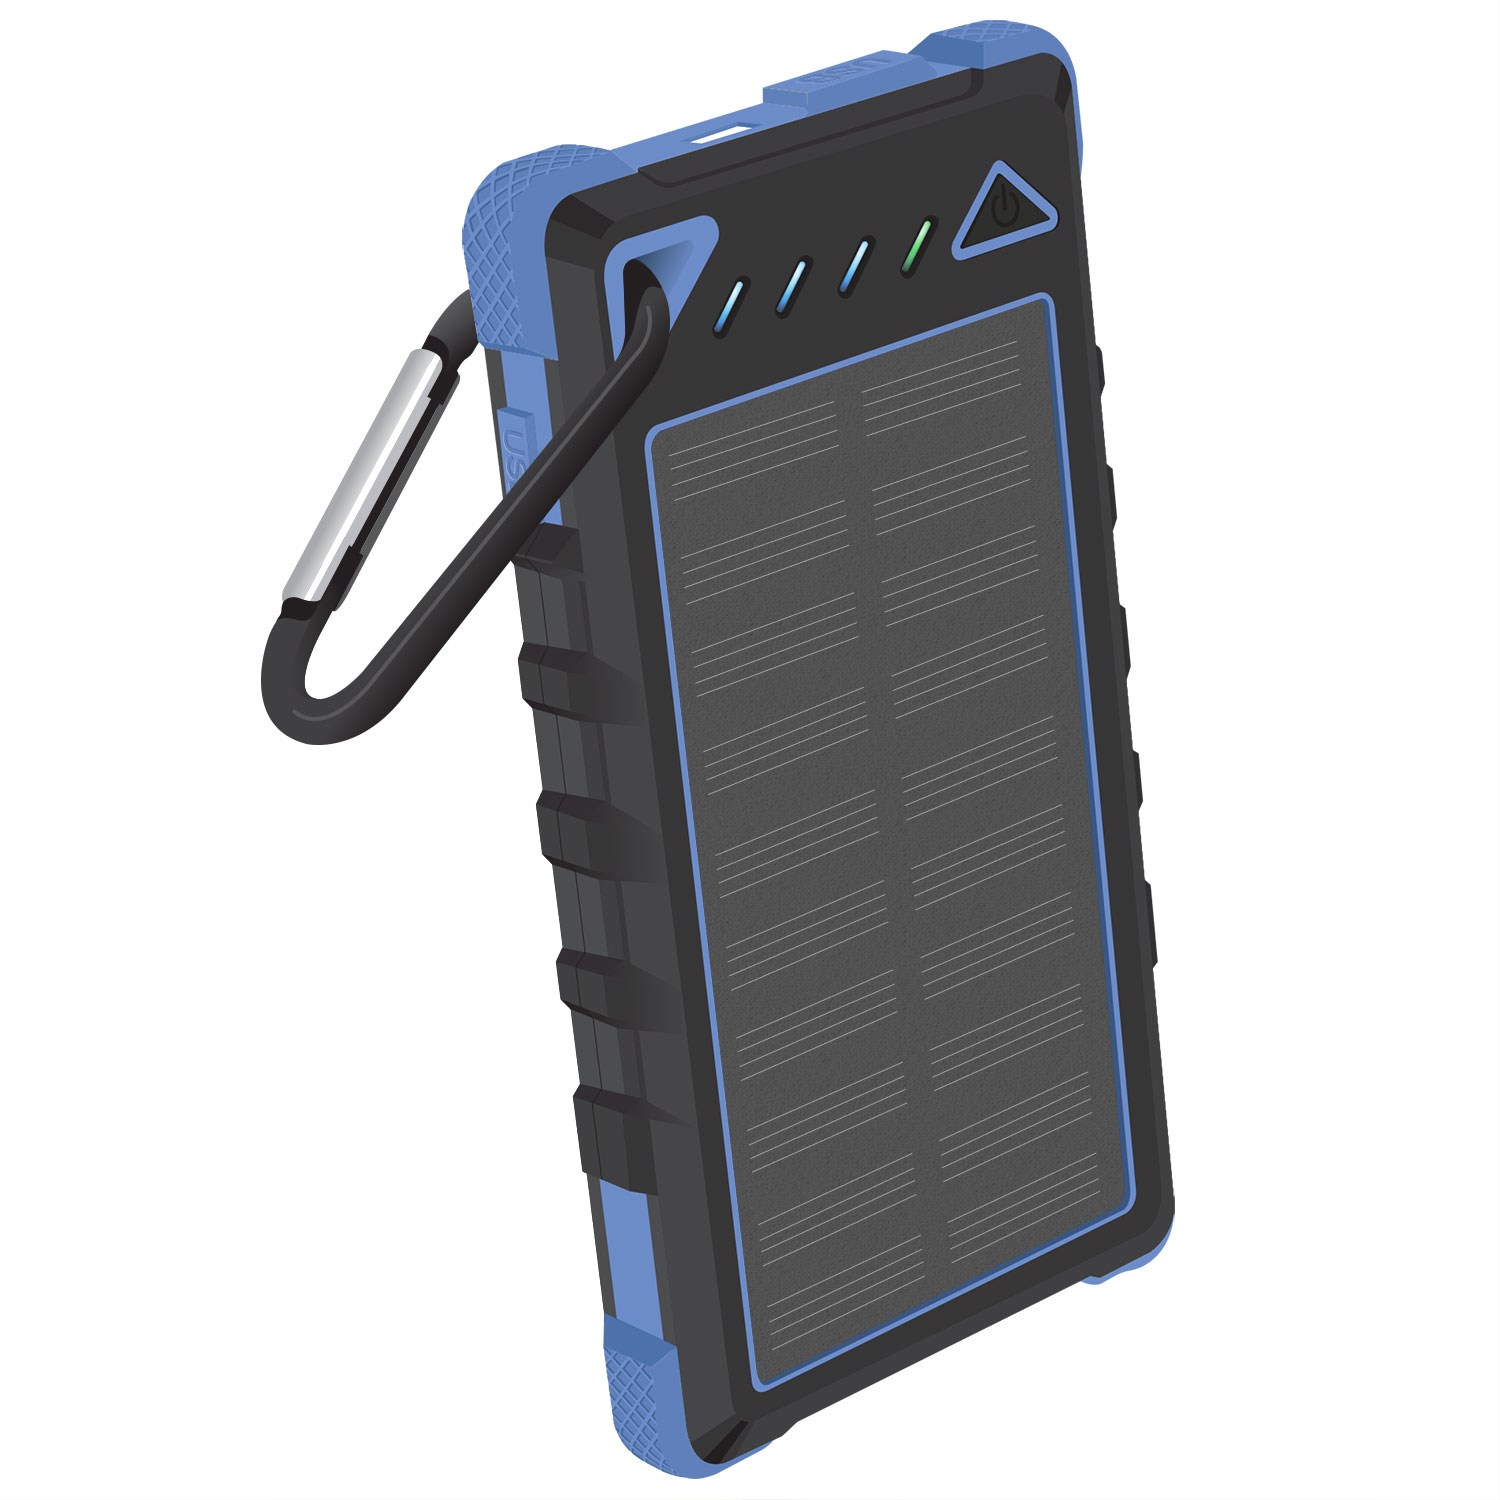 LG Volt 2 Solar Powered Portable PowerBank Blue